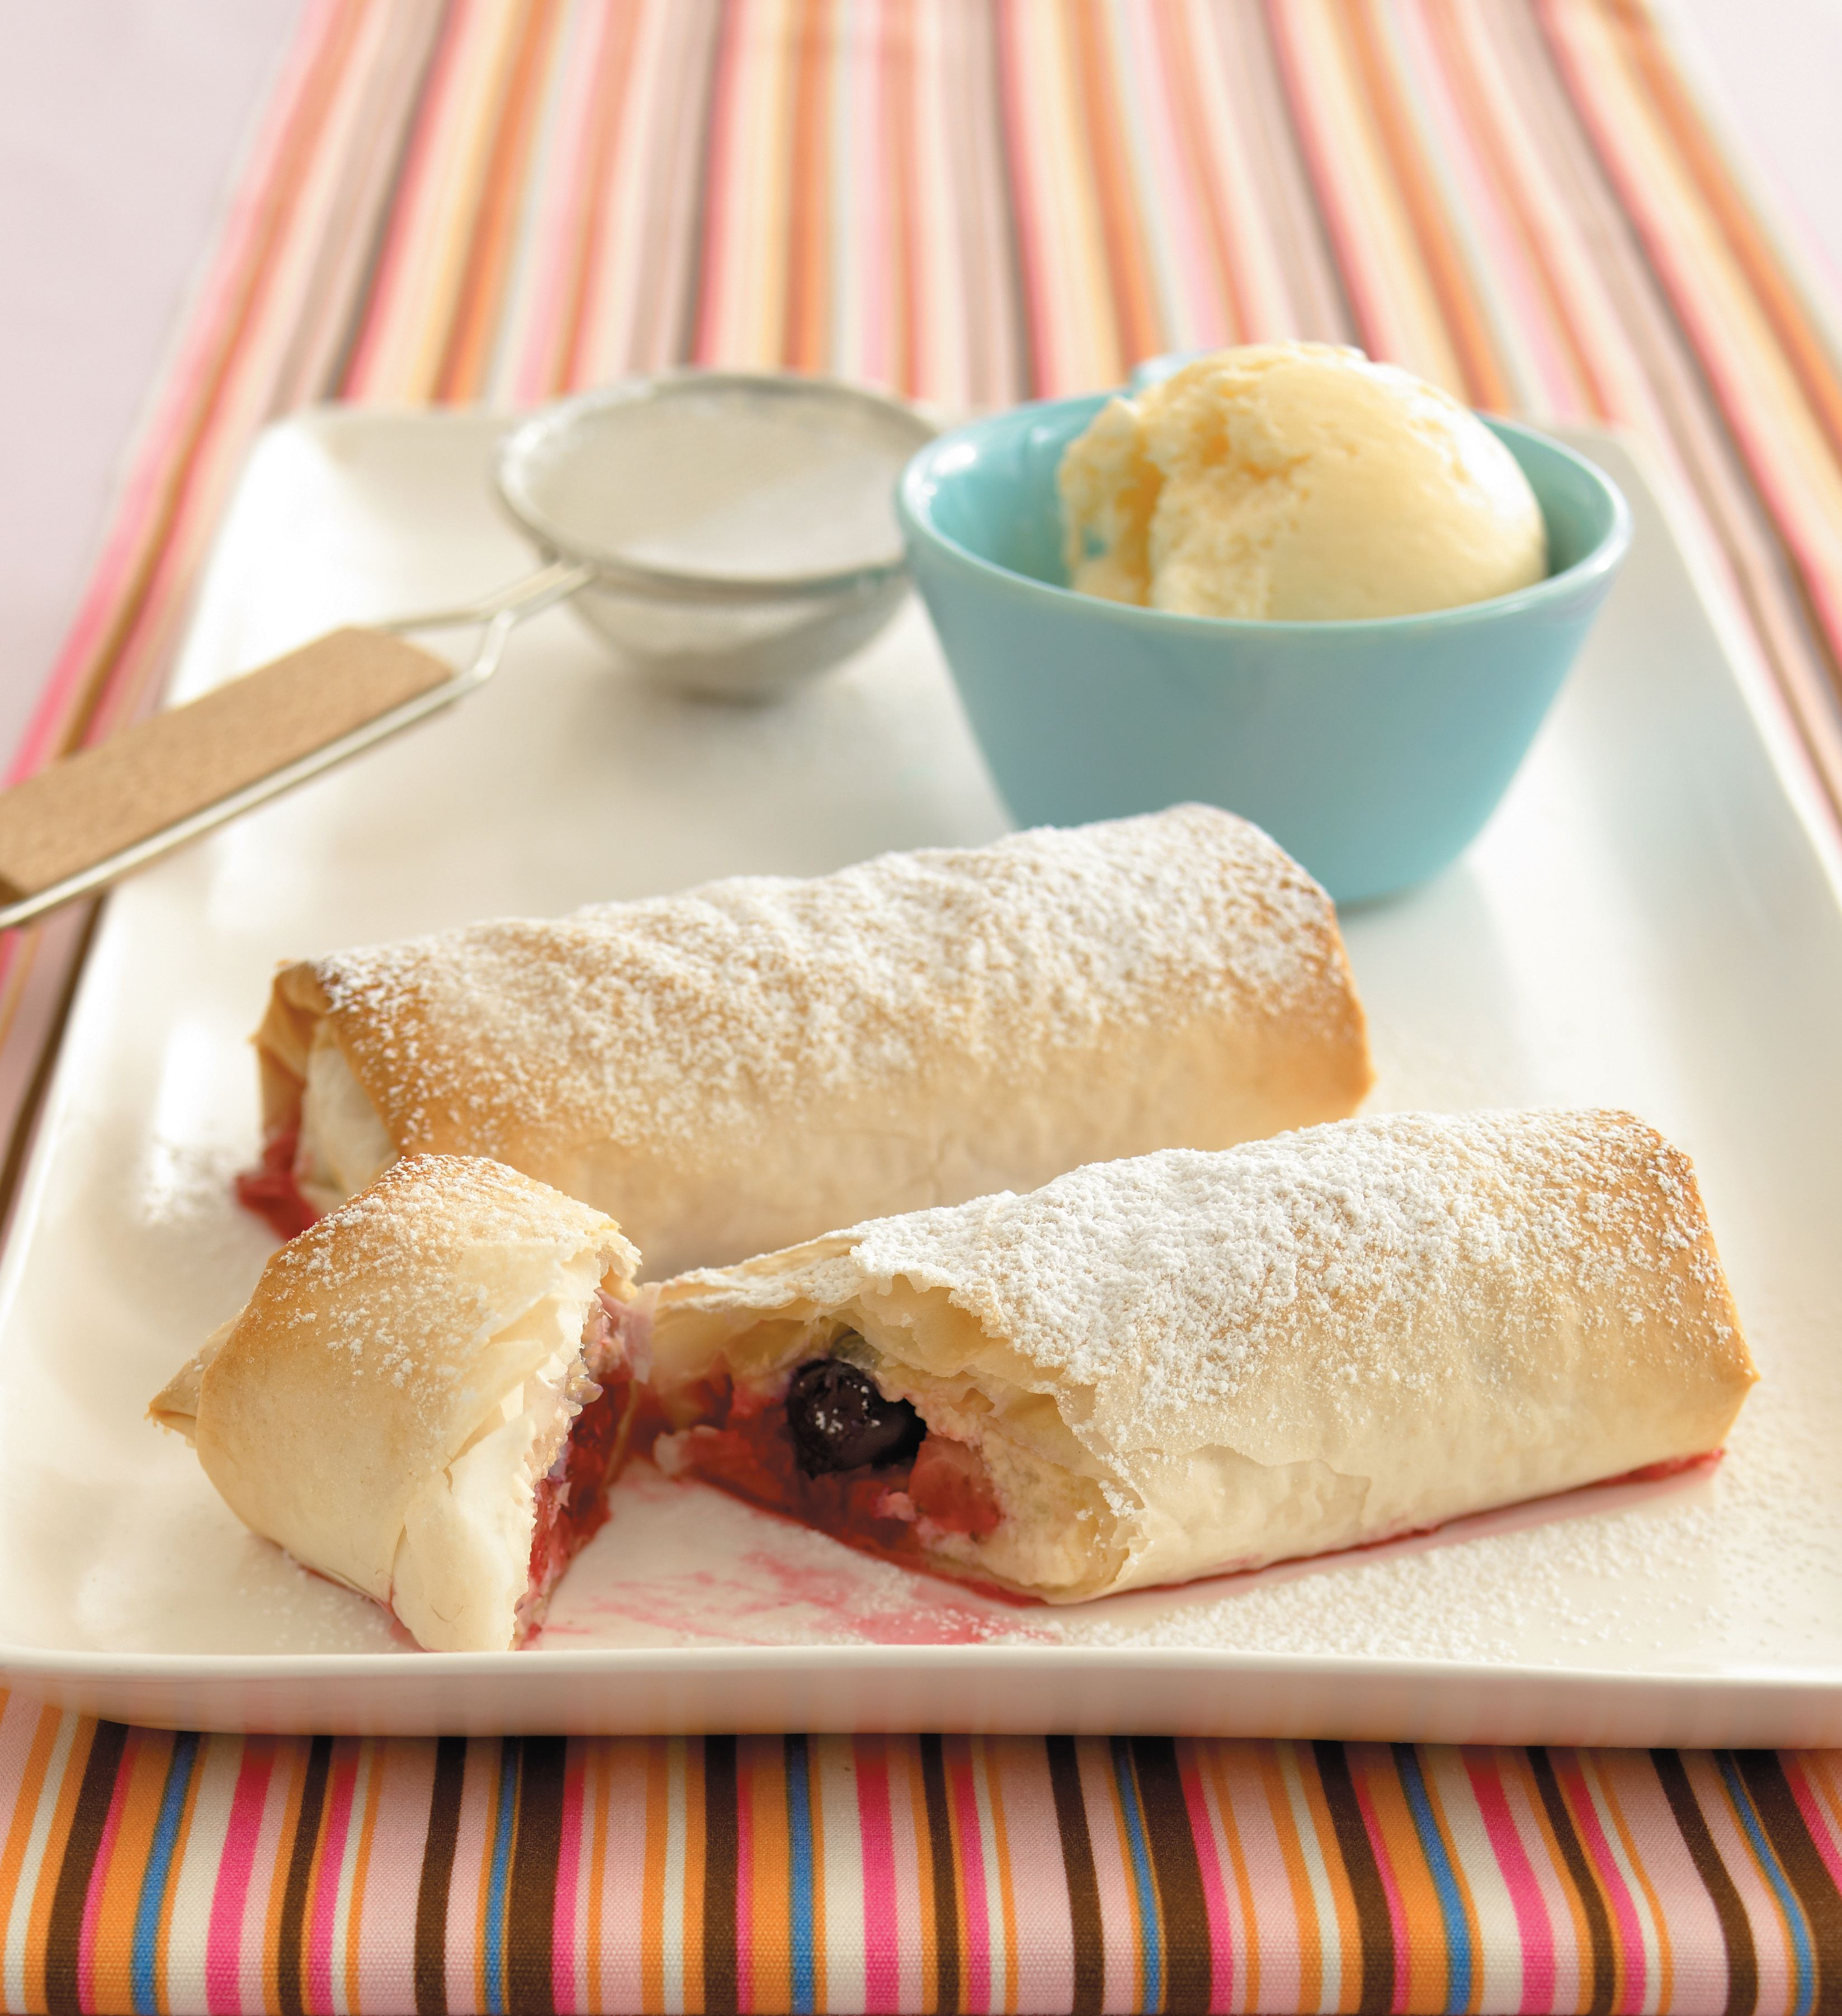 Mixed berry and ricotta strudels